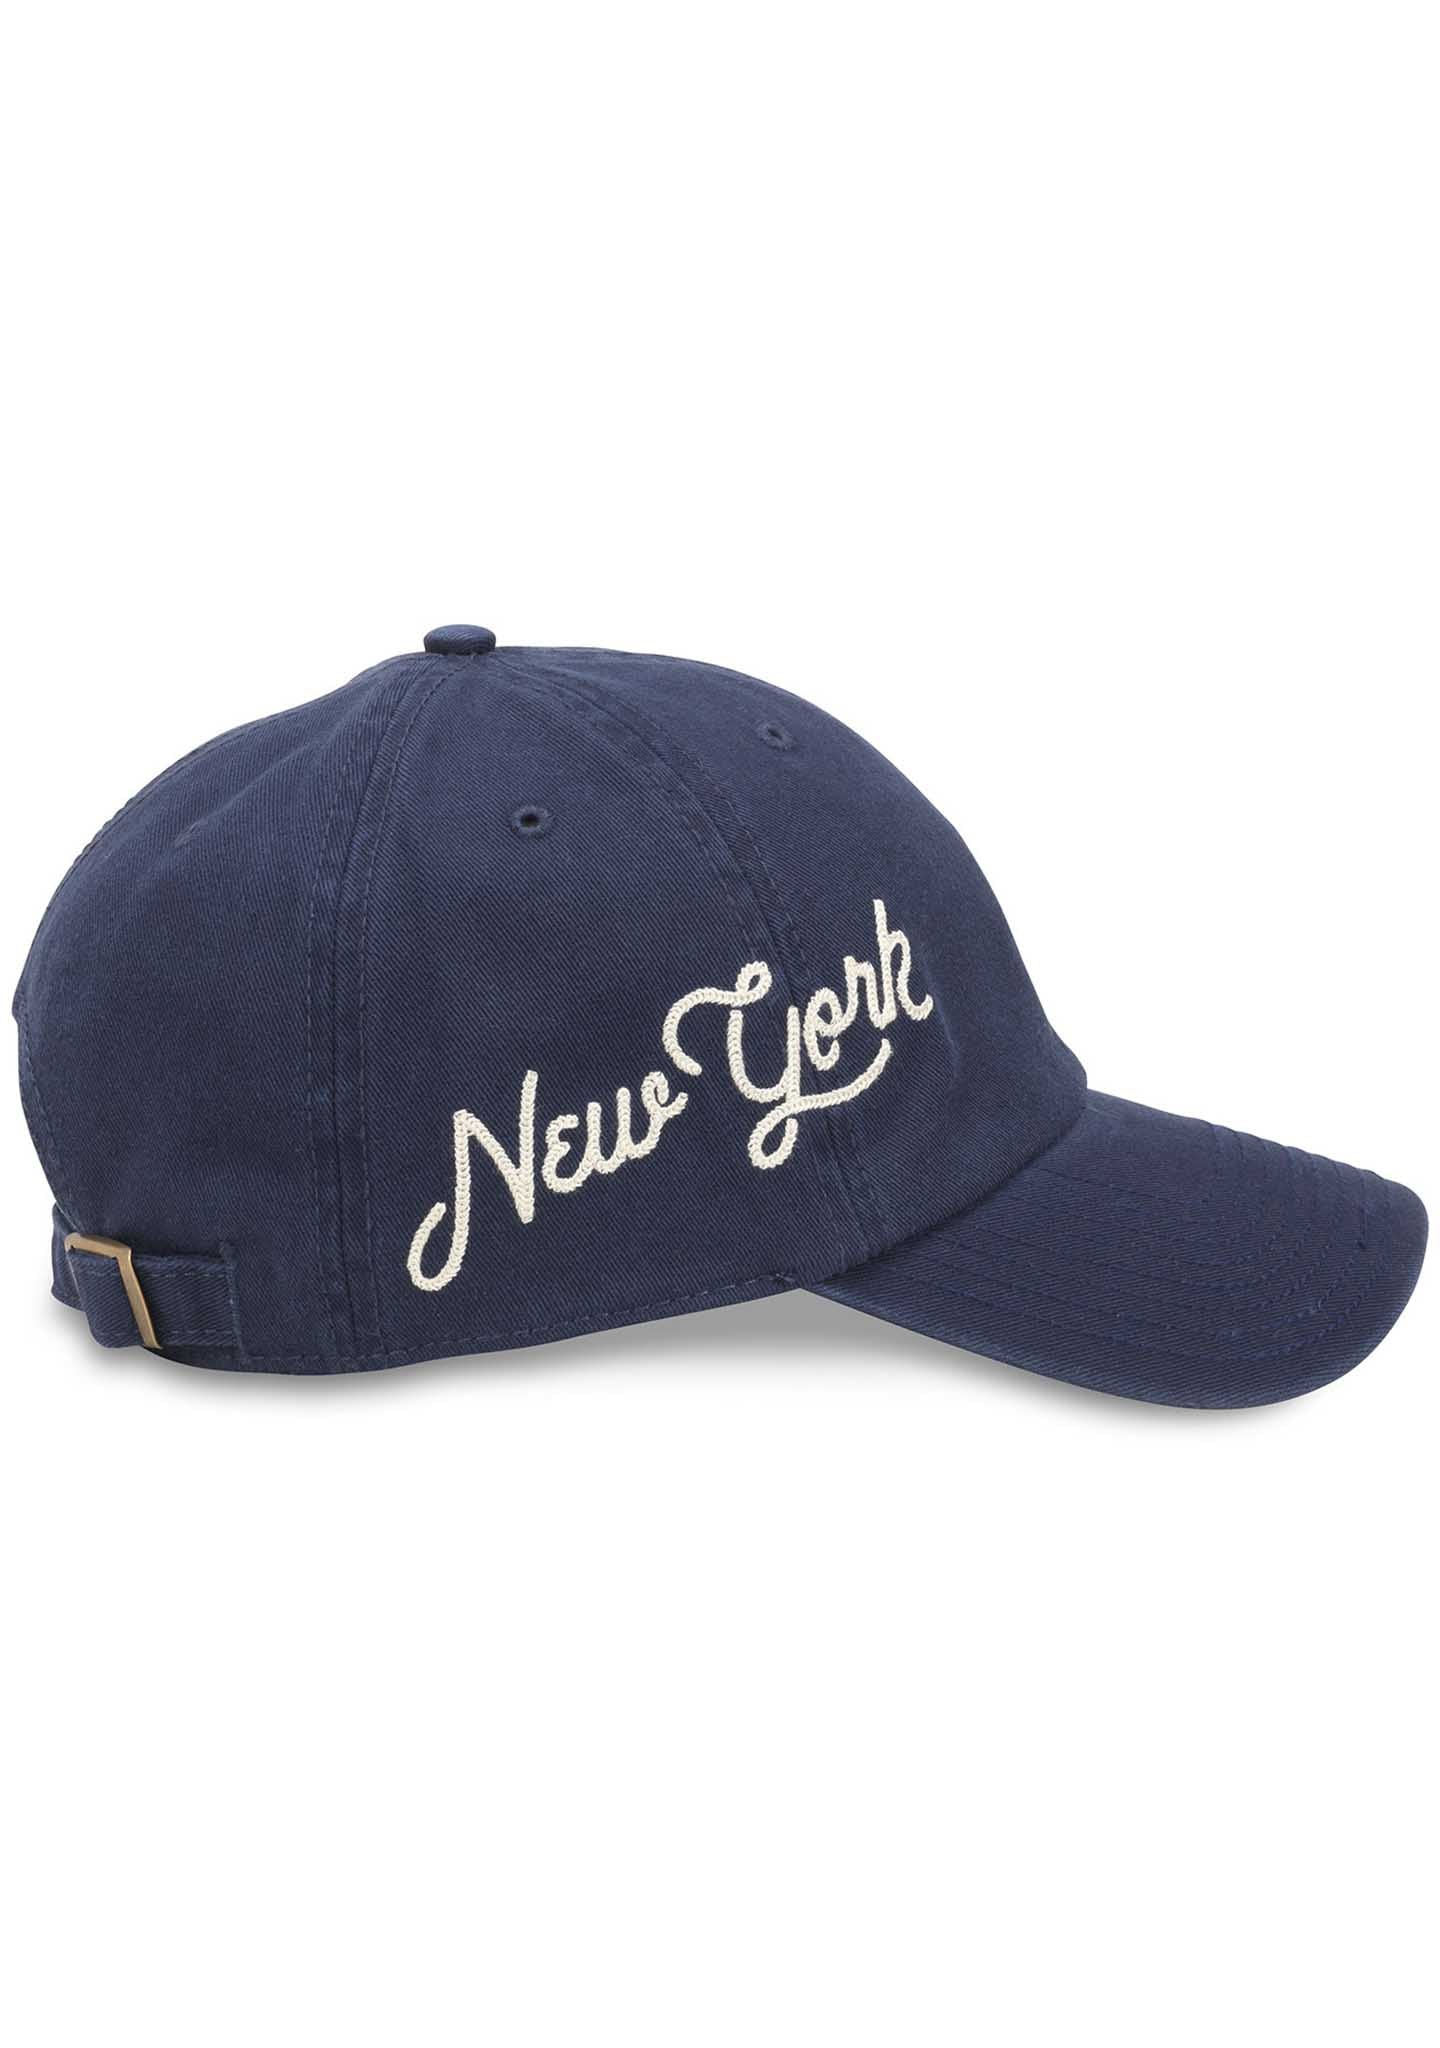 New York Far Side Raglan Hat